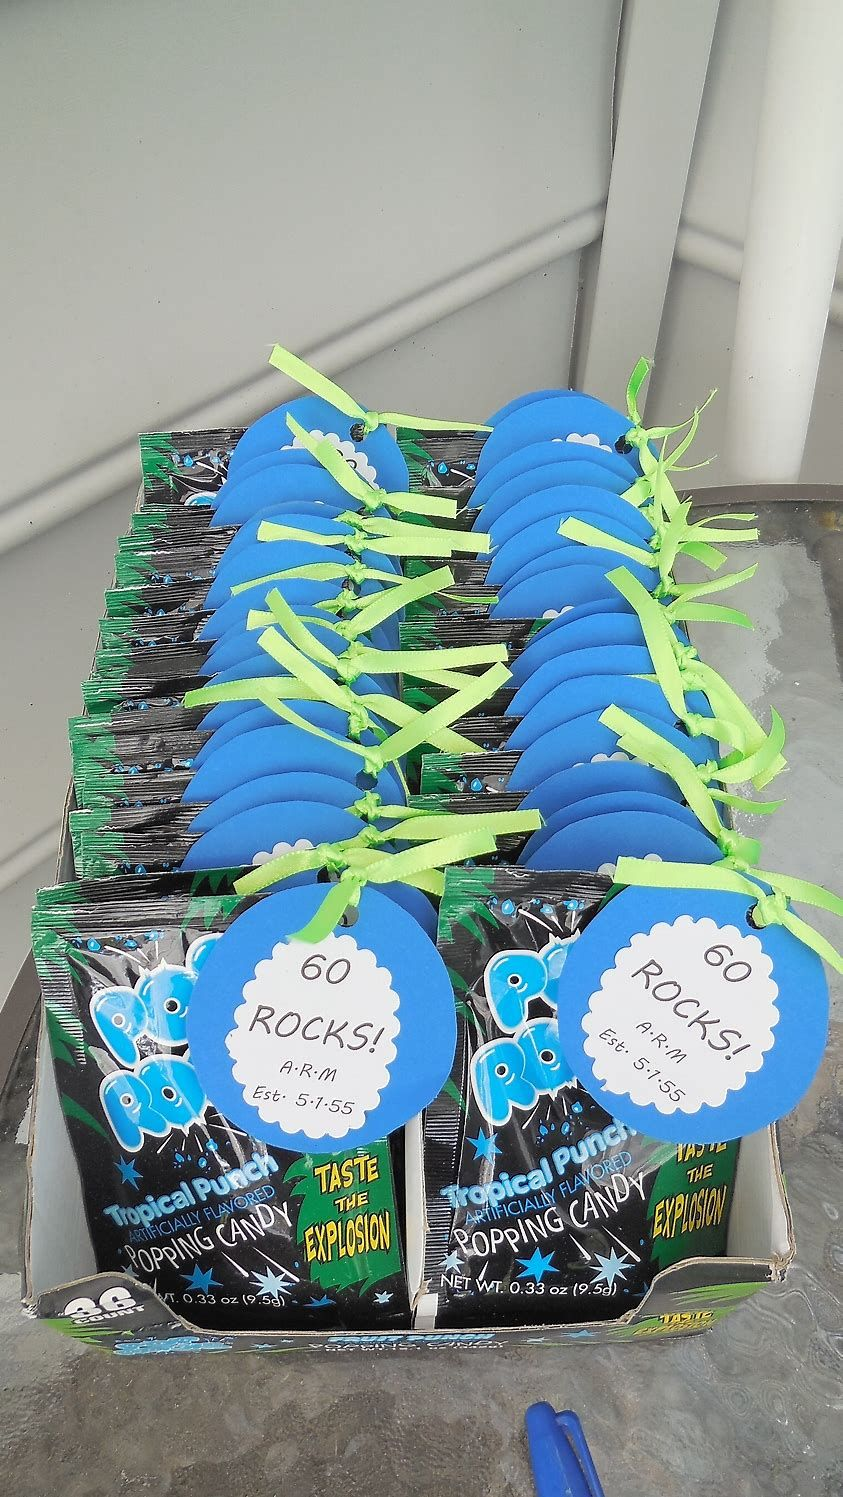 Image Result For Pinterest 60th Birthday Party Favor Ideas